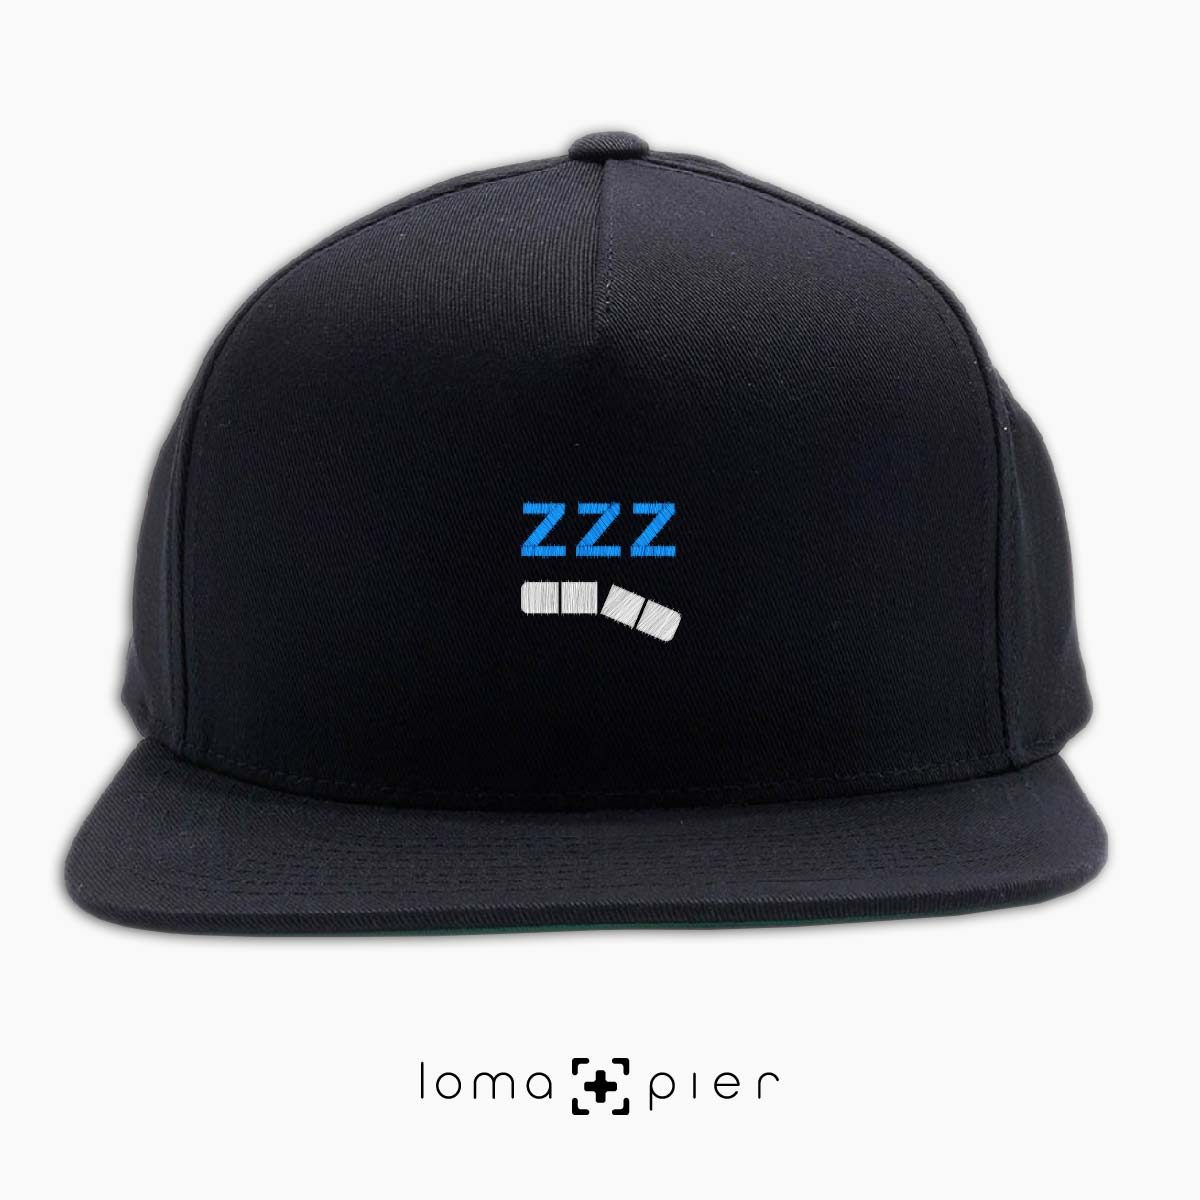 ZZZ-ANNY icon embroidered on a black classic snapback hat with white and sky blue thread by loma+pier hat store